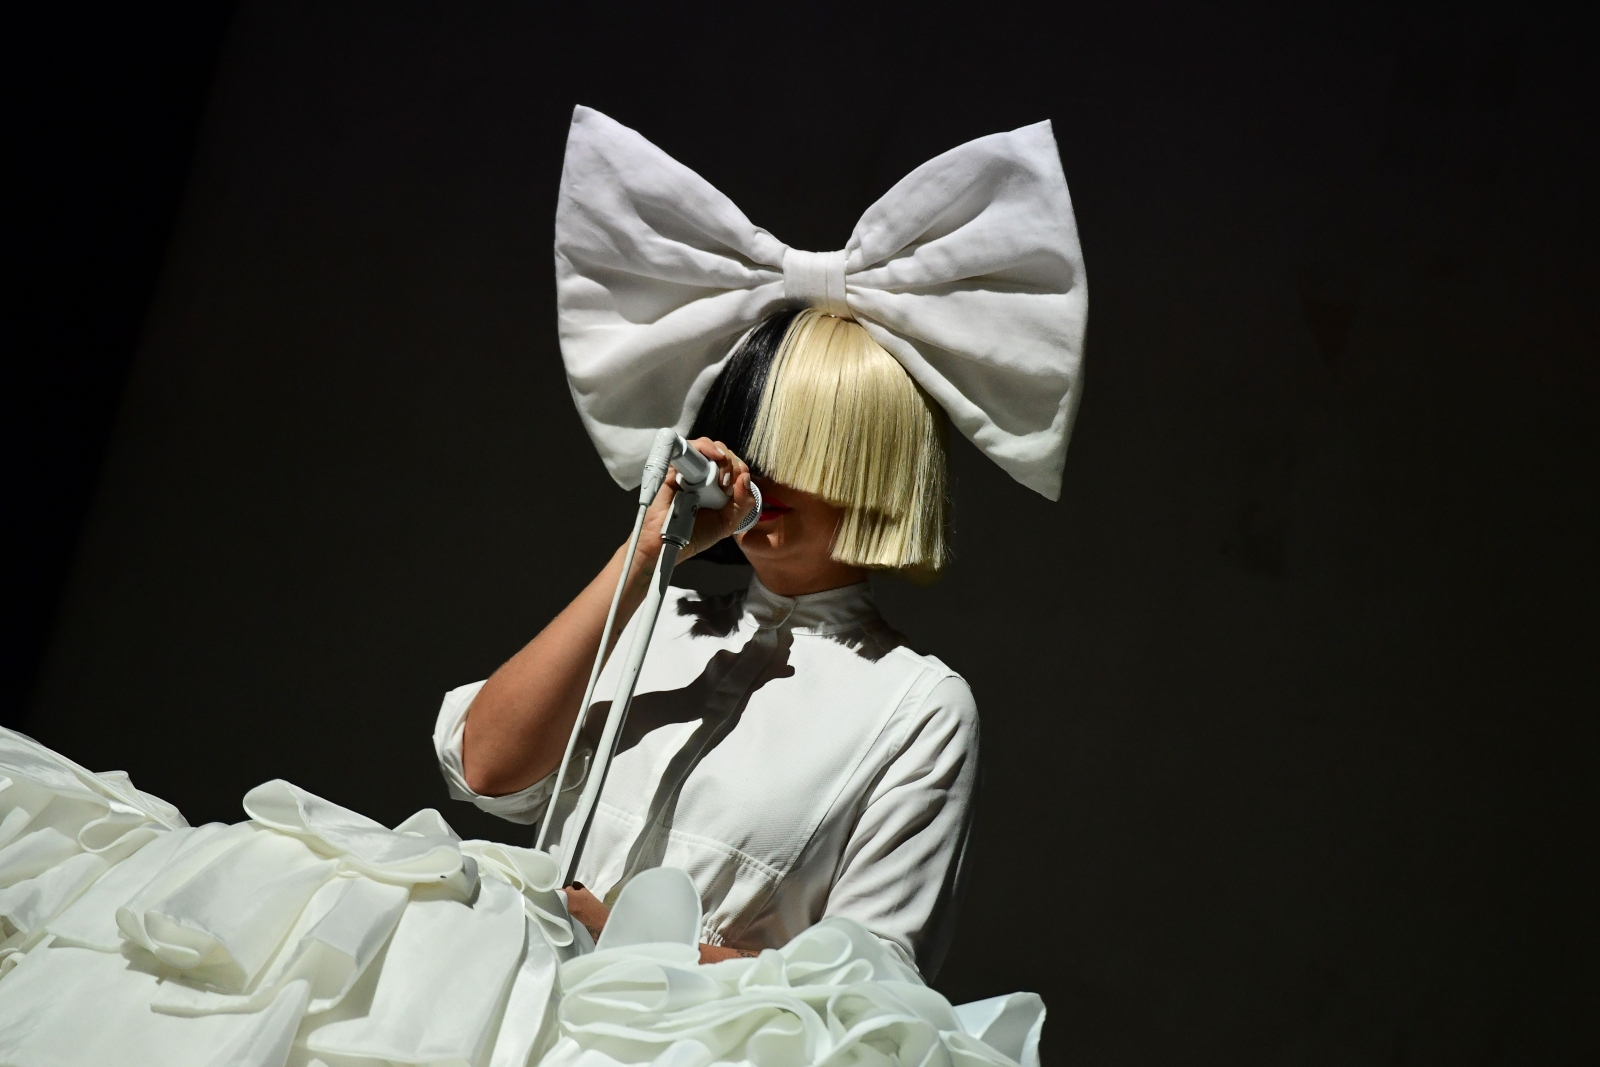 How To File A Class Action Lawsuit >> Sia sued: Fans file £1.8m lawsuit over 'impersonal' Tel Aviv concert